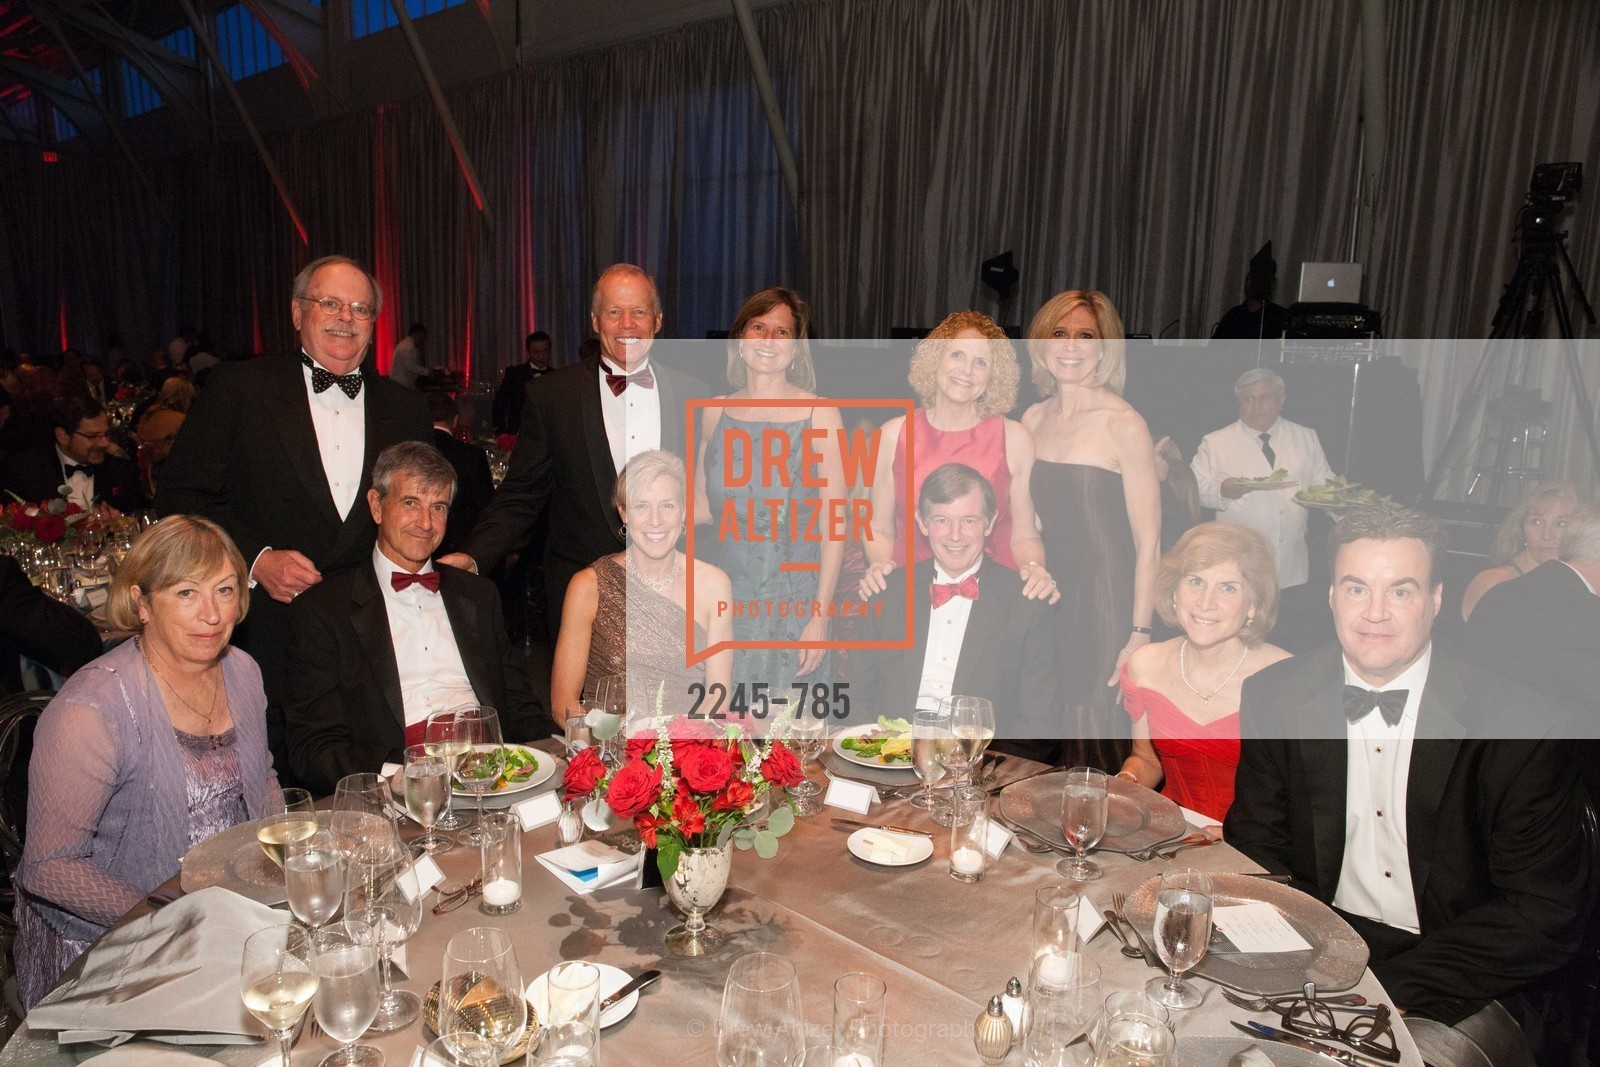 George Dies, Meredith Mills, Sarah Earley, Anthony Earley, Debbie Messemer, Gail McGovern Jim Messemer, 2015 RED CROSS Gala, US, April 12th, 2015,Drew Altizer, Drew Altizer Photography, full-service agency, private events, San Francisco photographer, photographer california